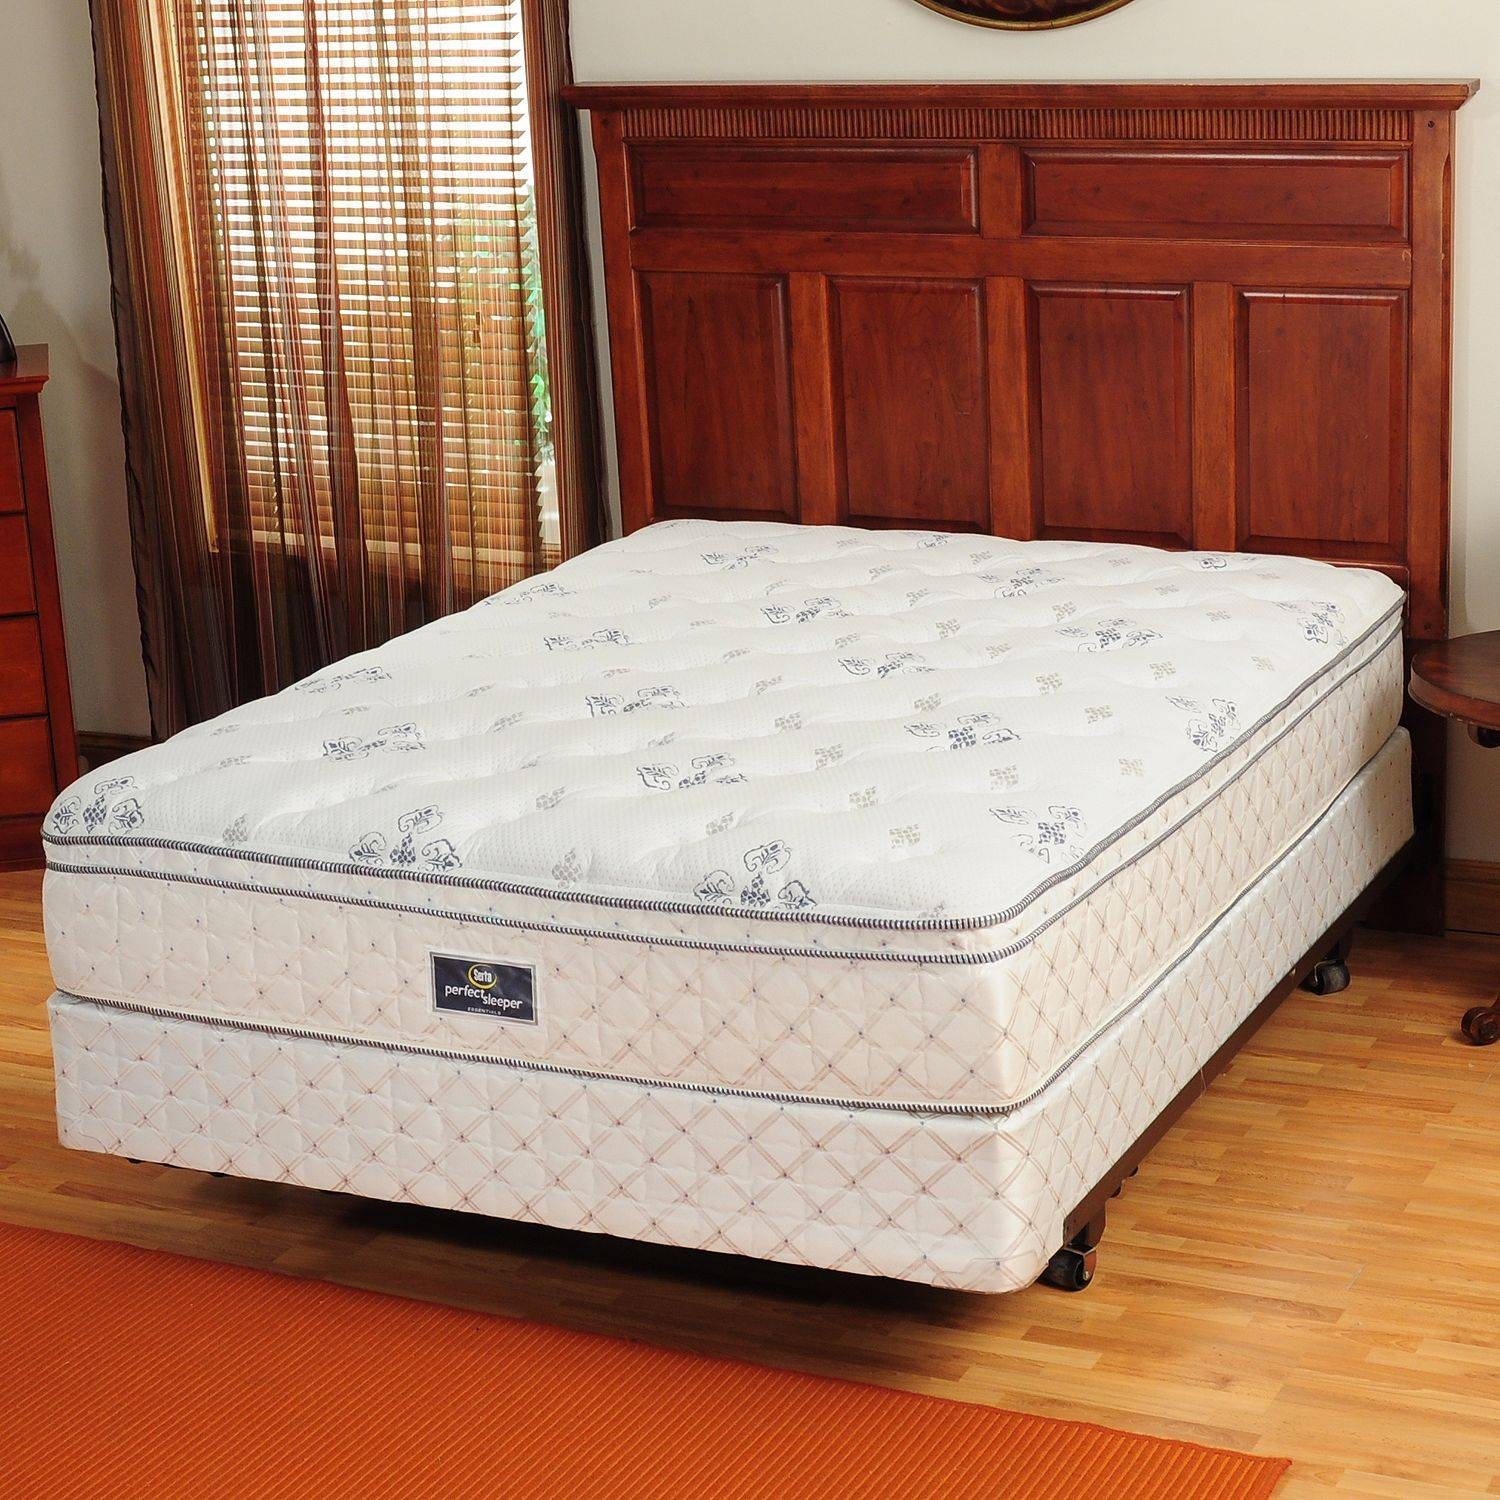 Queen Bed And Mattress Set Great As Bed Sets In Girls Bedding Sets regarding Queen Mattress Sets (Image 12 of 15)